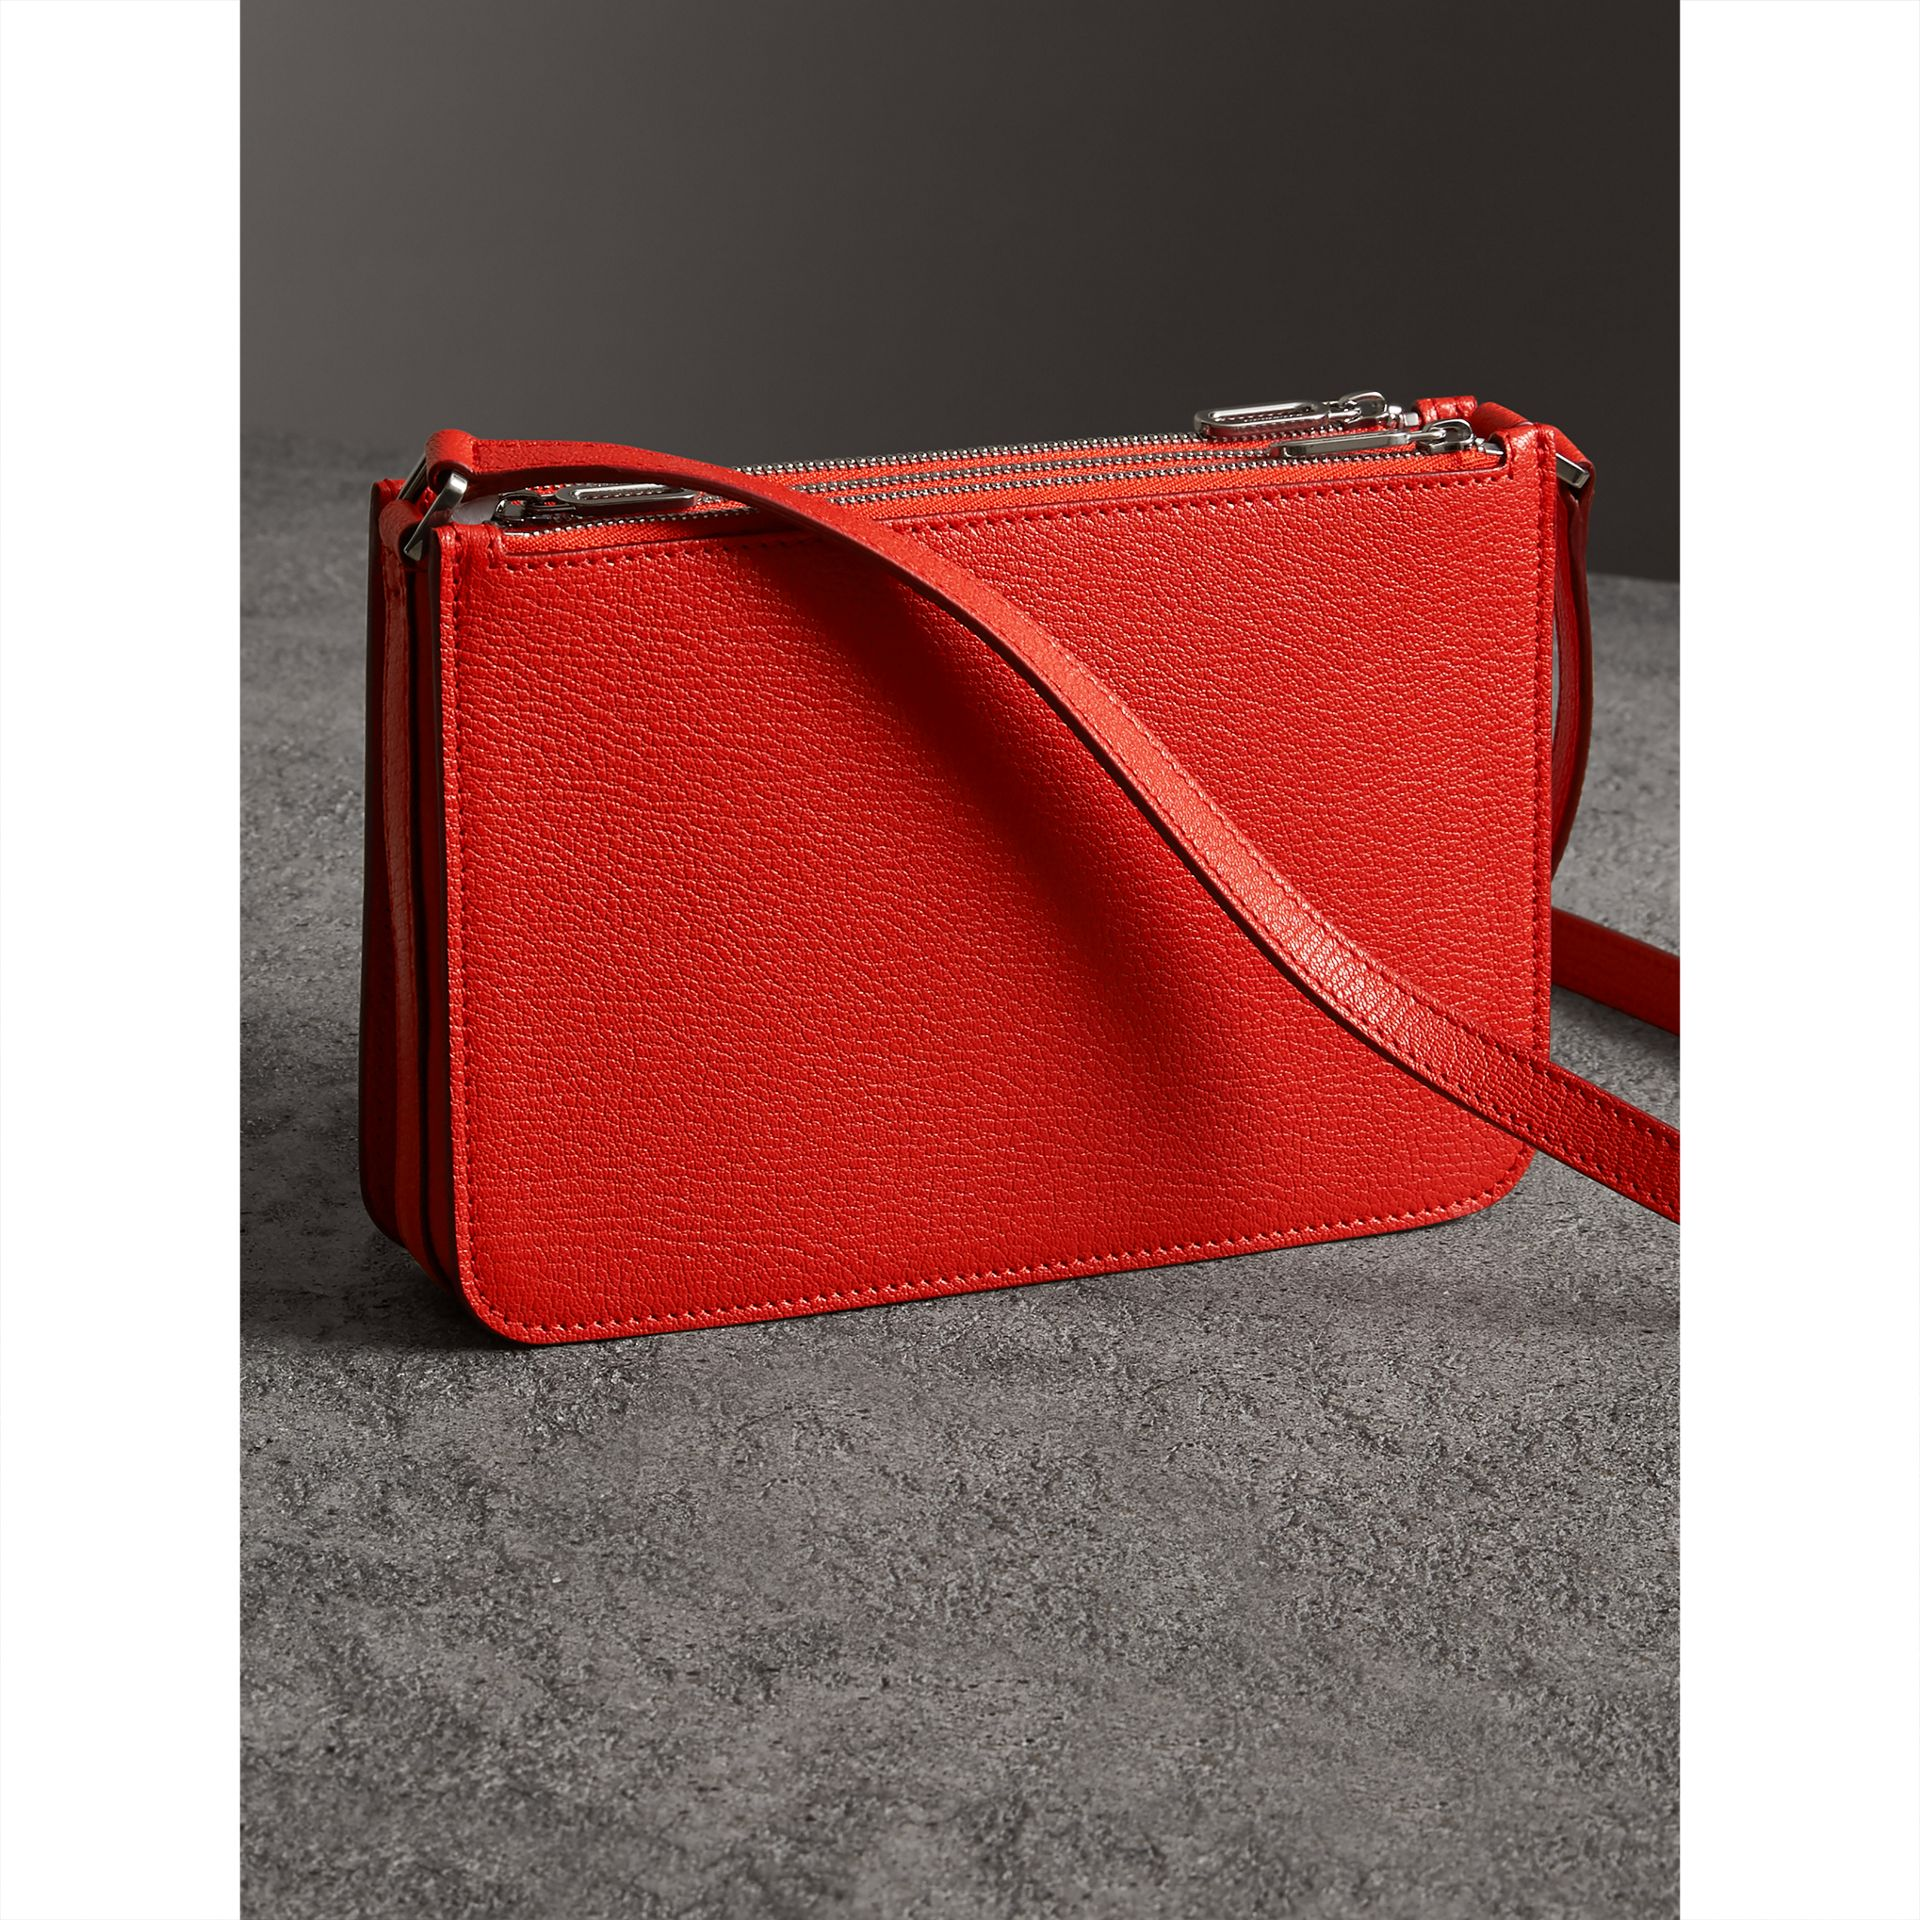 Triple Zip Grainy Leather Crossbody Bag in Bright Red - Women | Burberry - gallery image 4